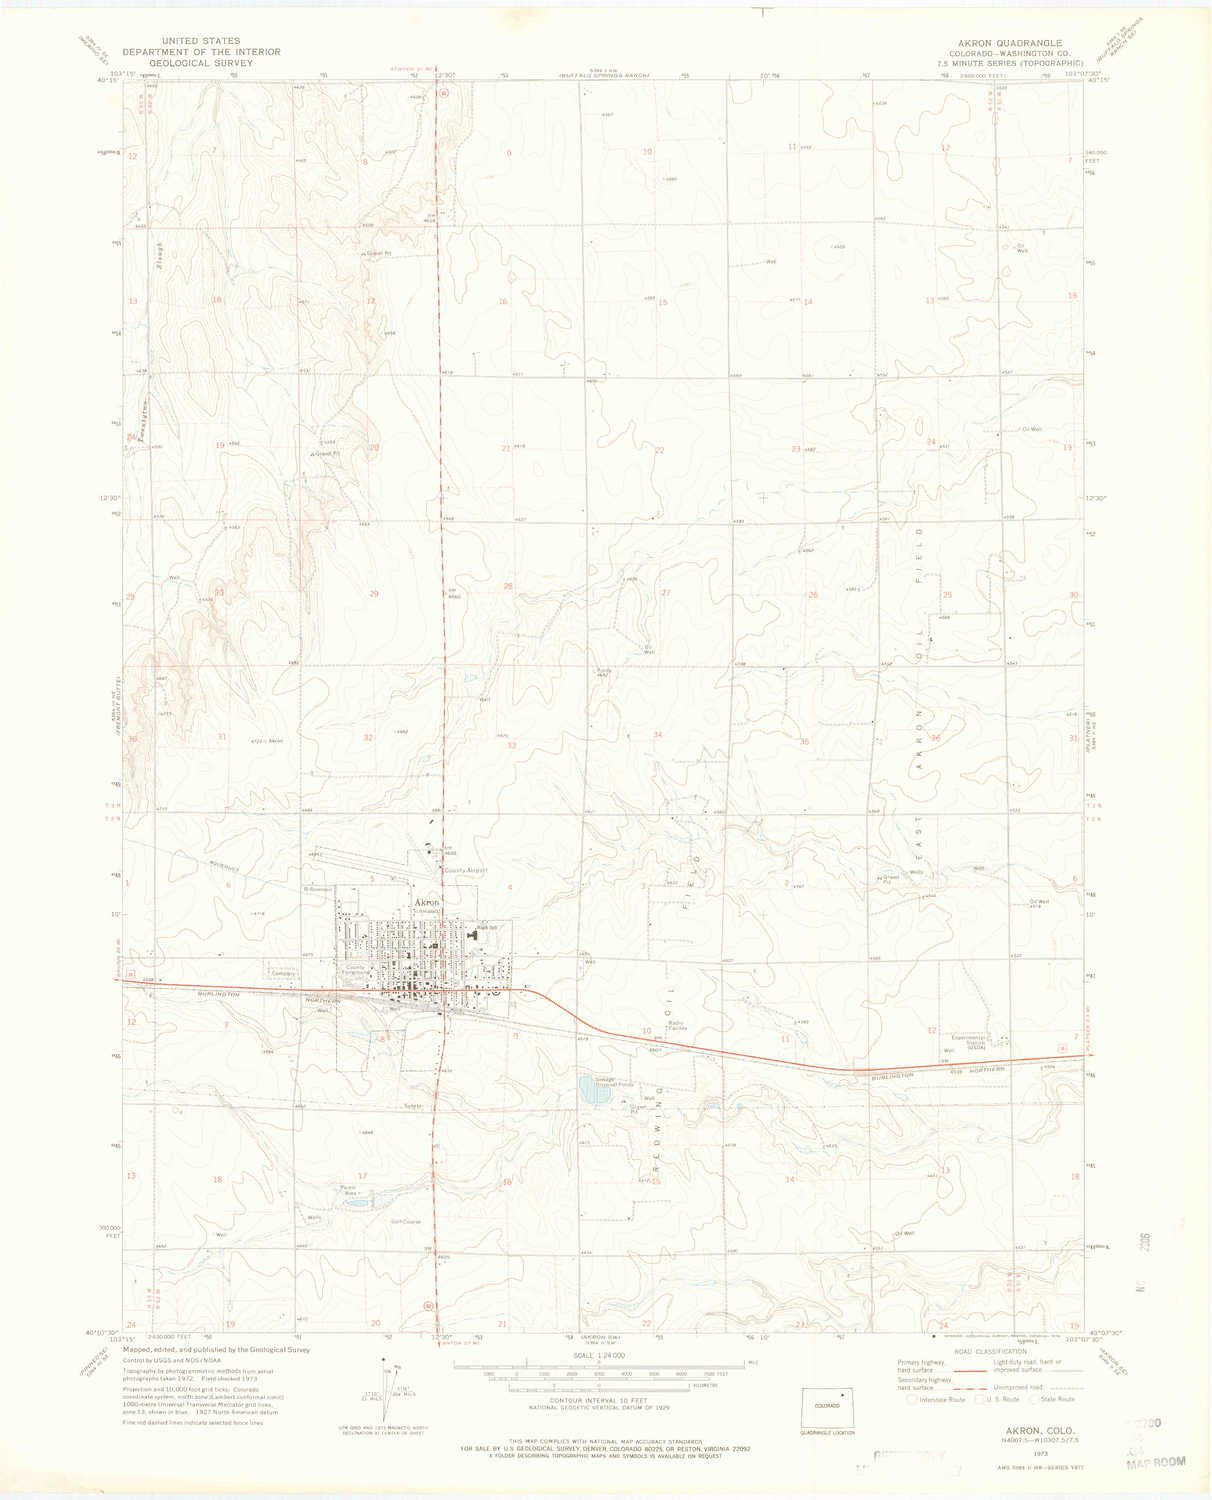 Akron Colorado Map.Amazon Com Yellowmaps Akron Co Topo Map 1 24000 Scale 7 5 X 7 5